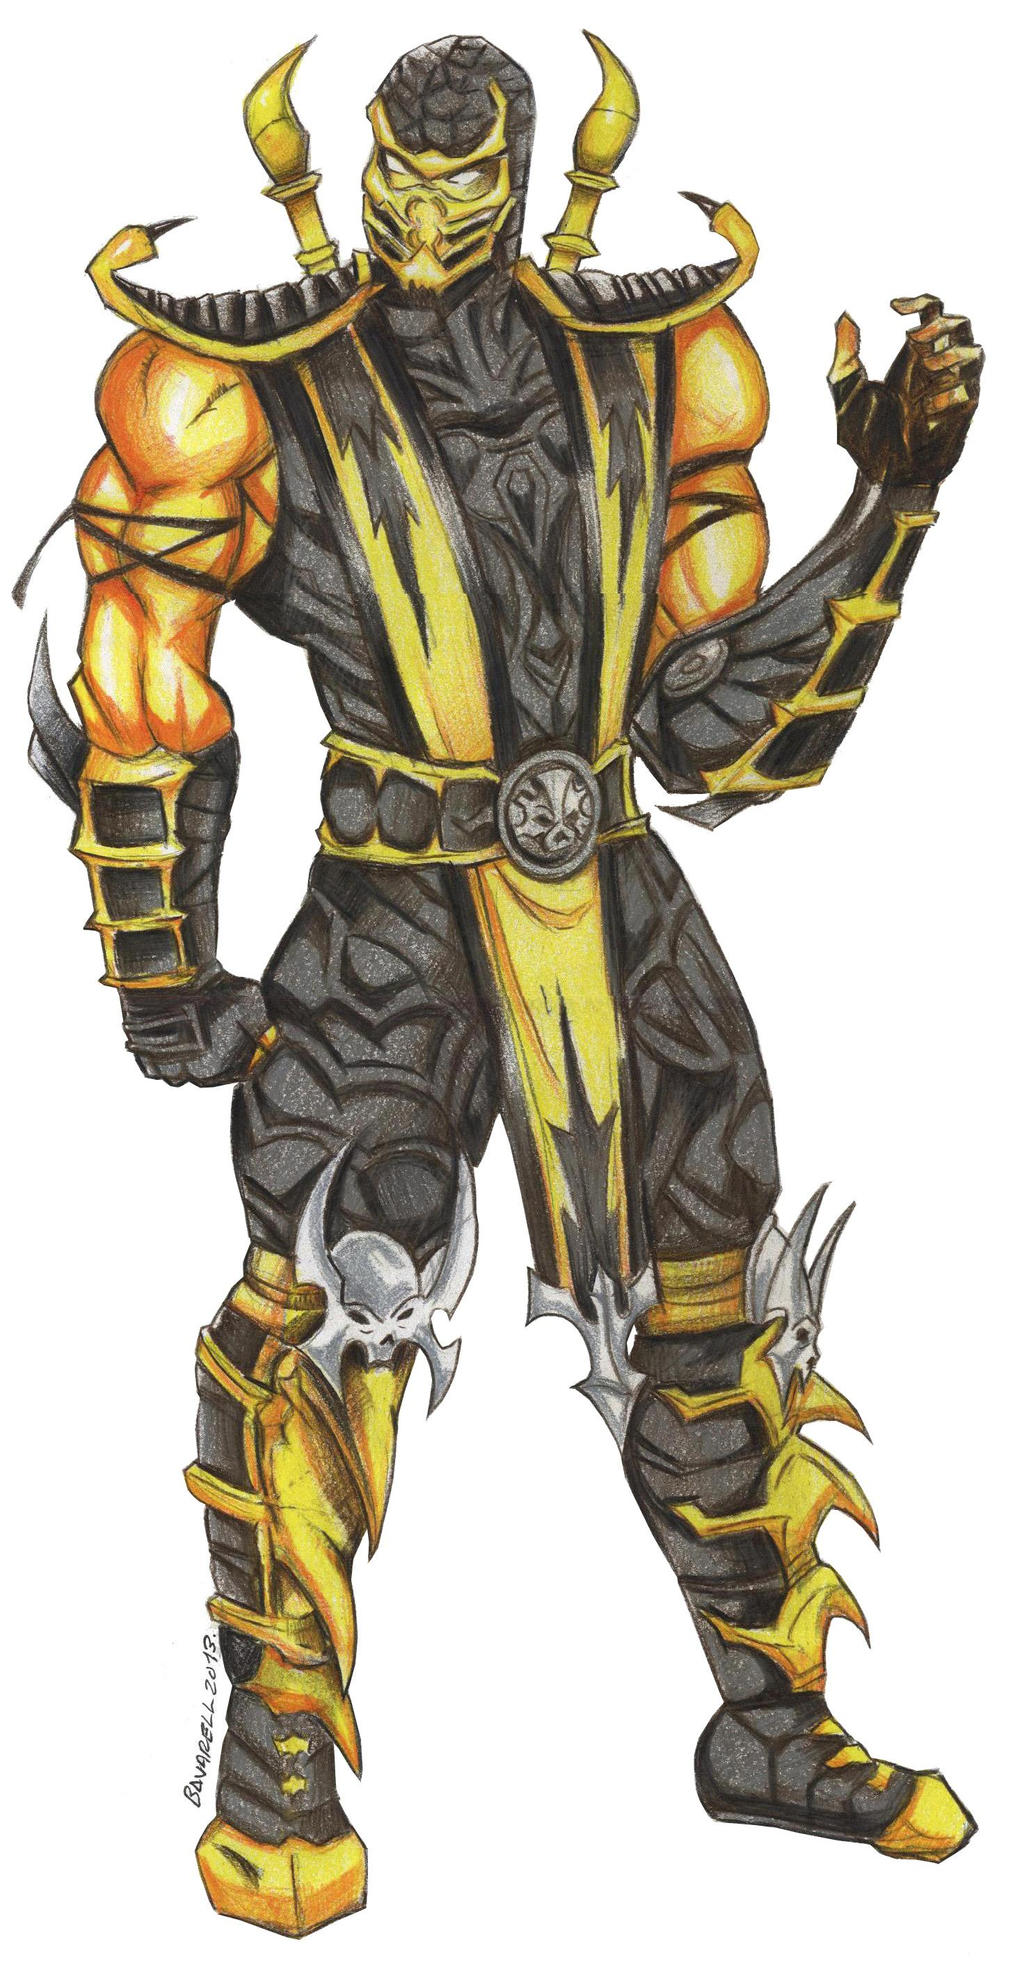 Mortal kombat 9 scorpion